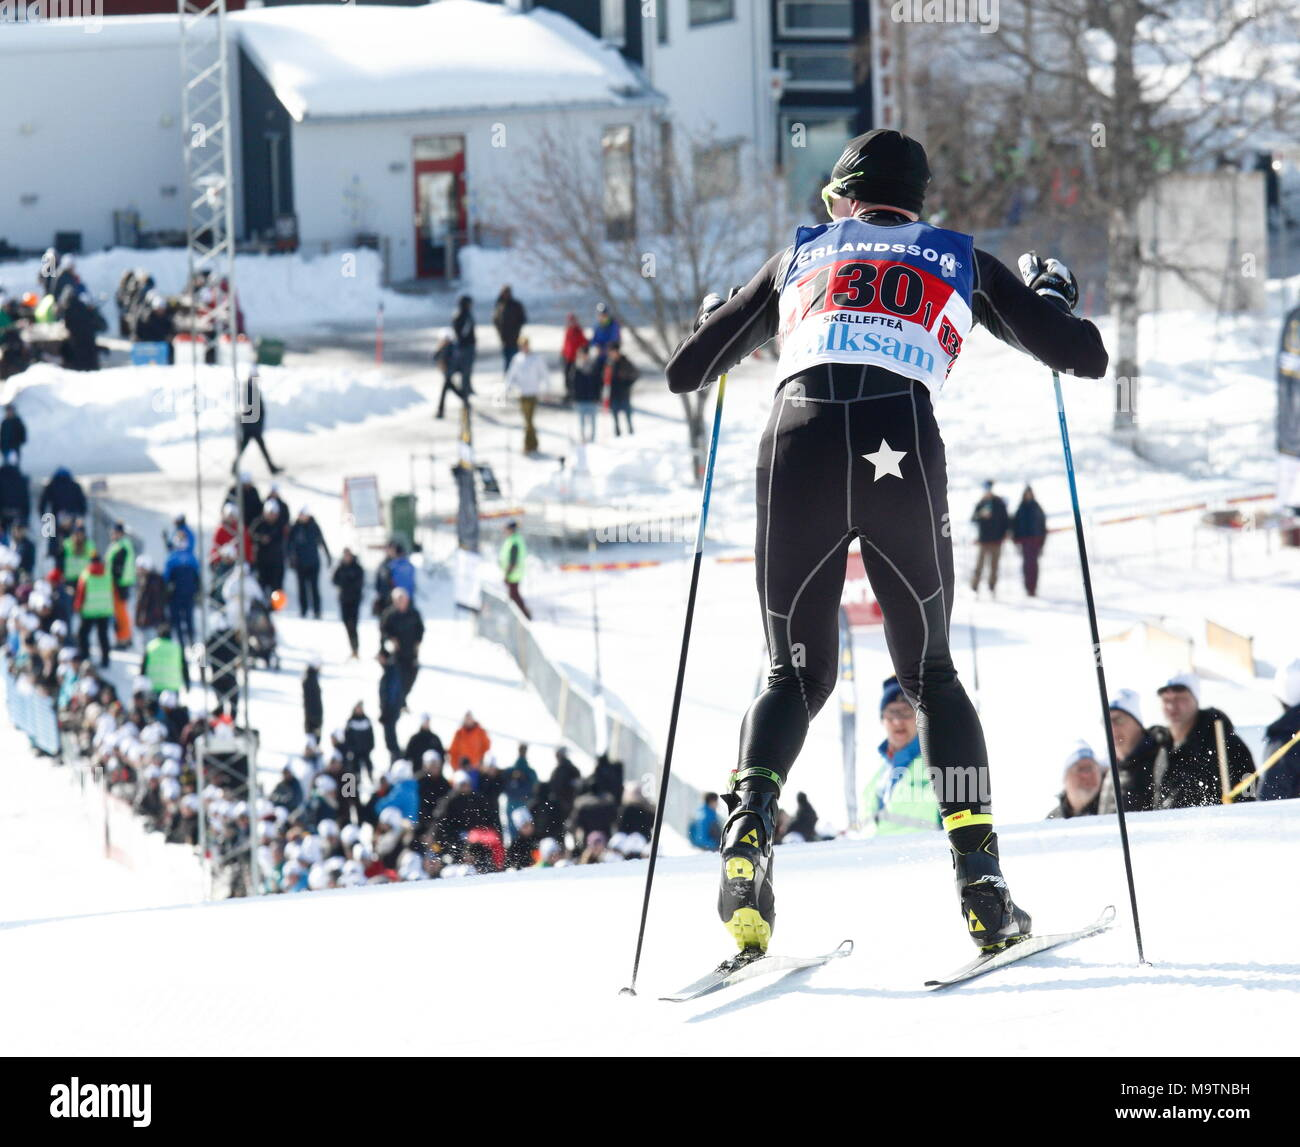 Action from the gruelling cross-country ski event at the Swedish Masters competition, SM Veckan, Skellefteå, Sweden 2018 - Stock Image